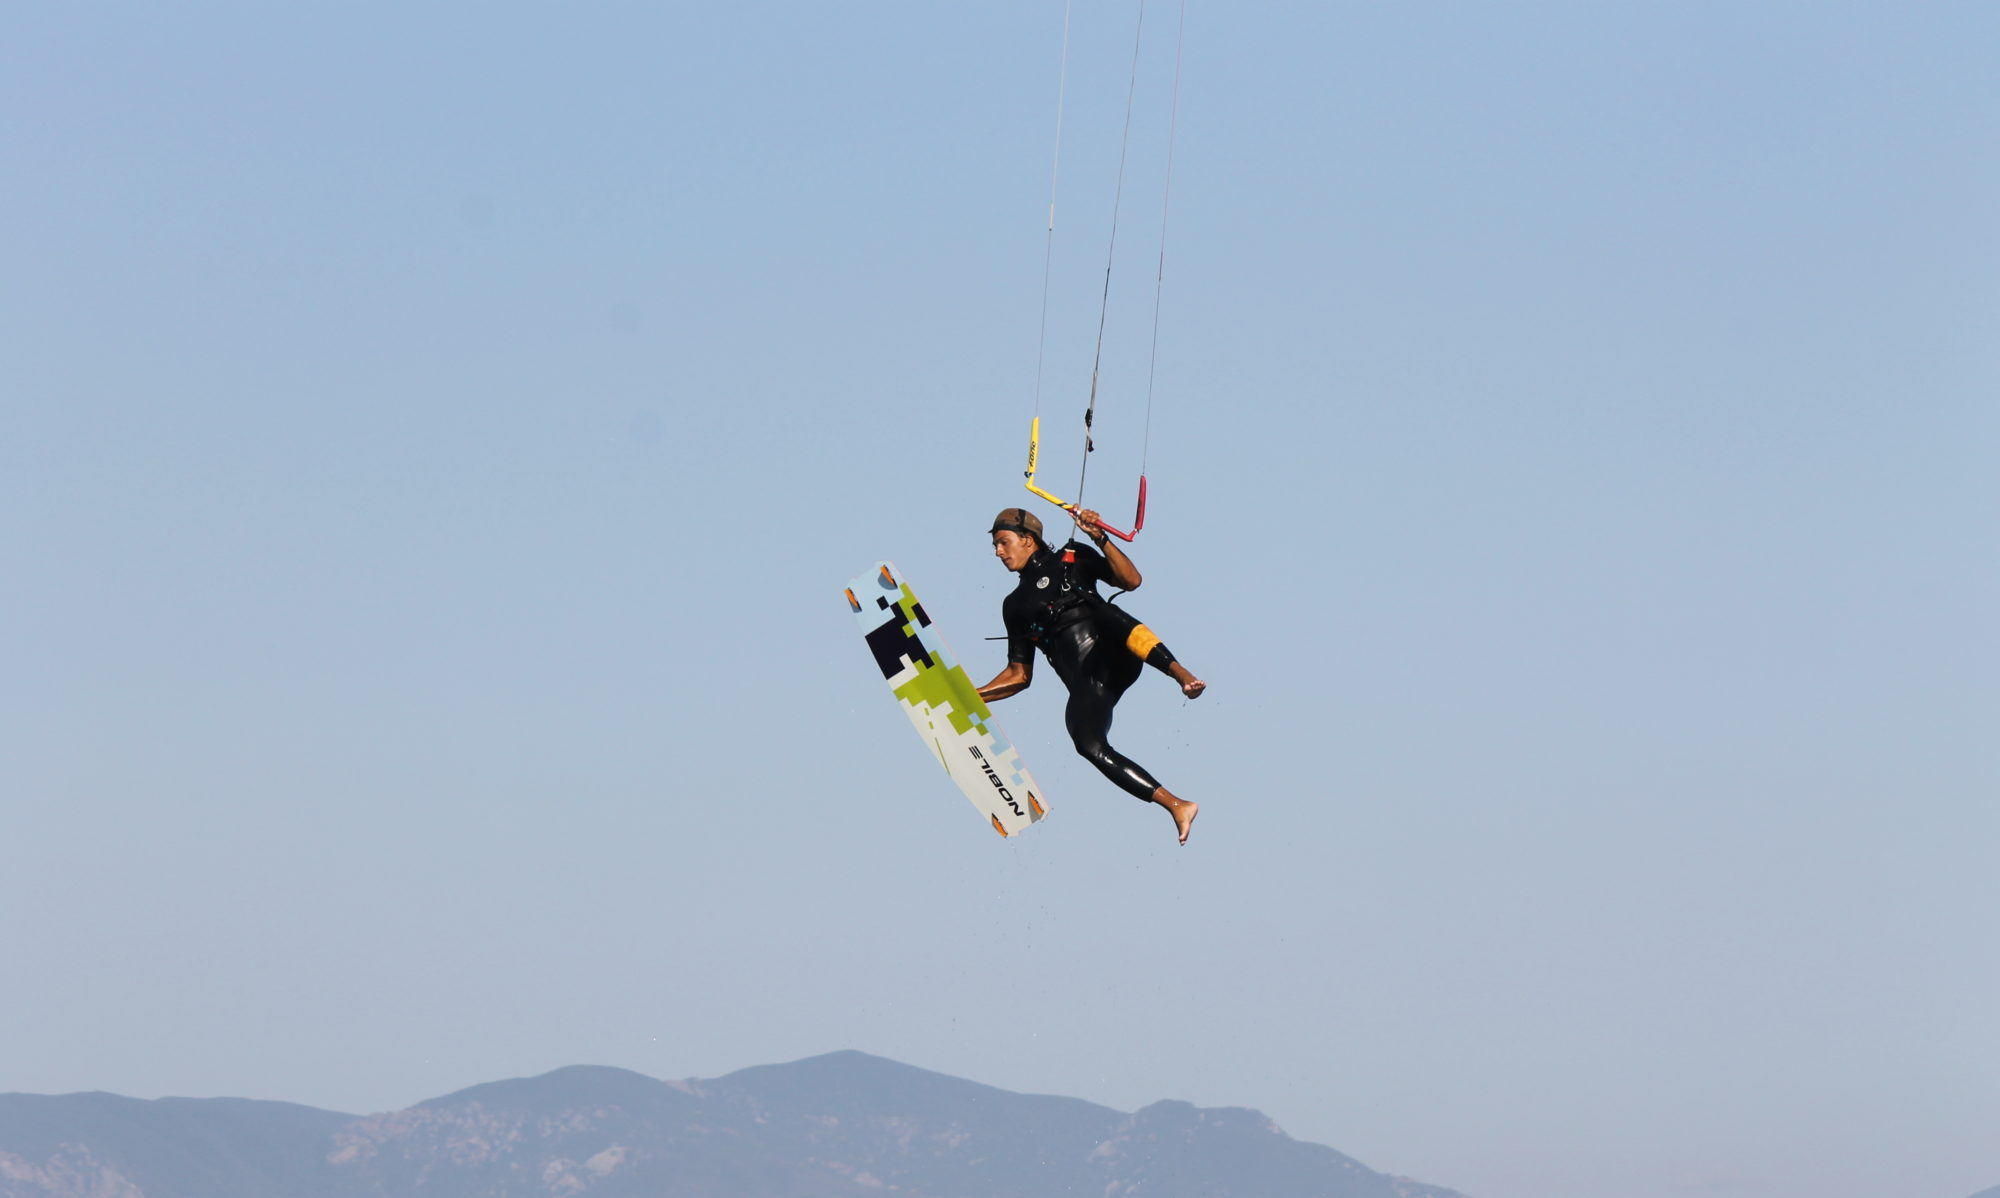 Salti con kite a Punta Trettu in Sardegna the best kite spot for kitesurfing